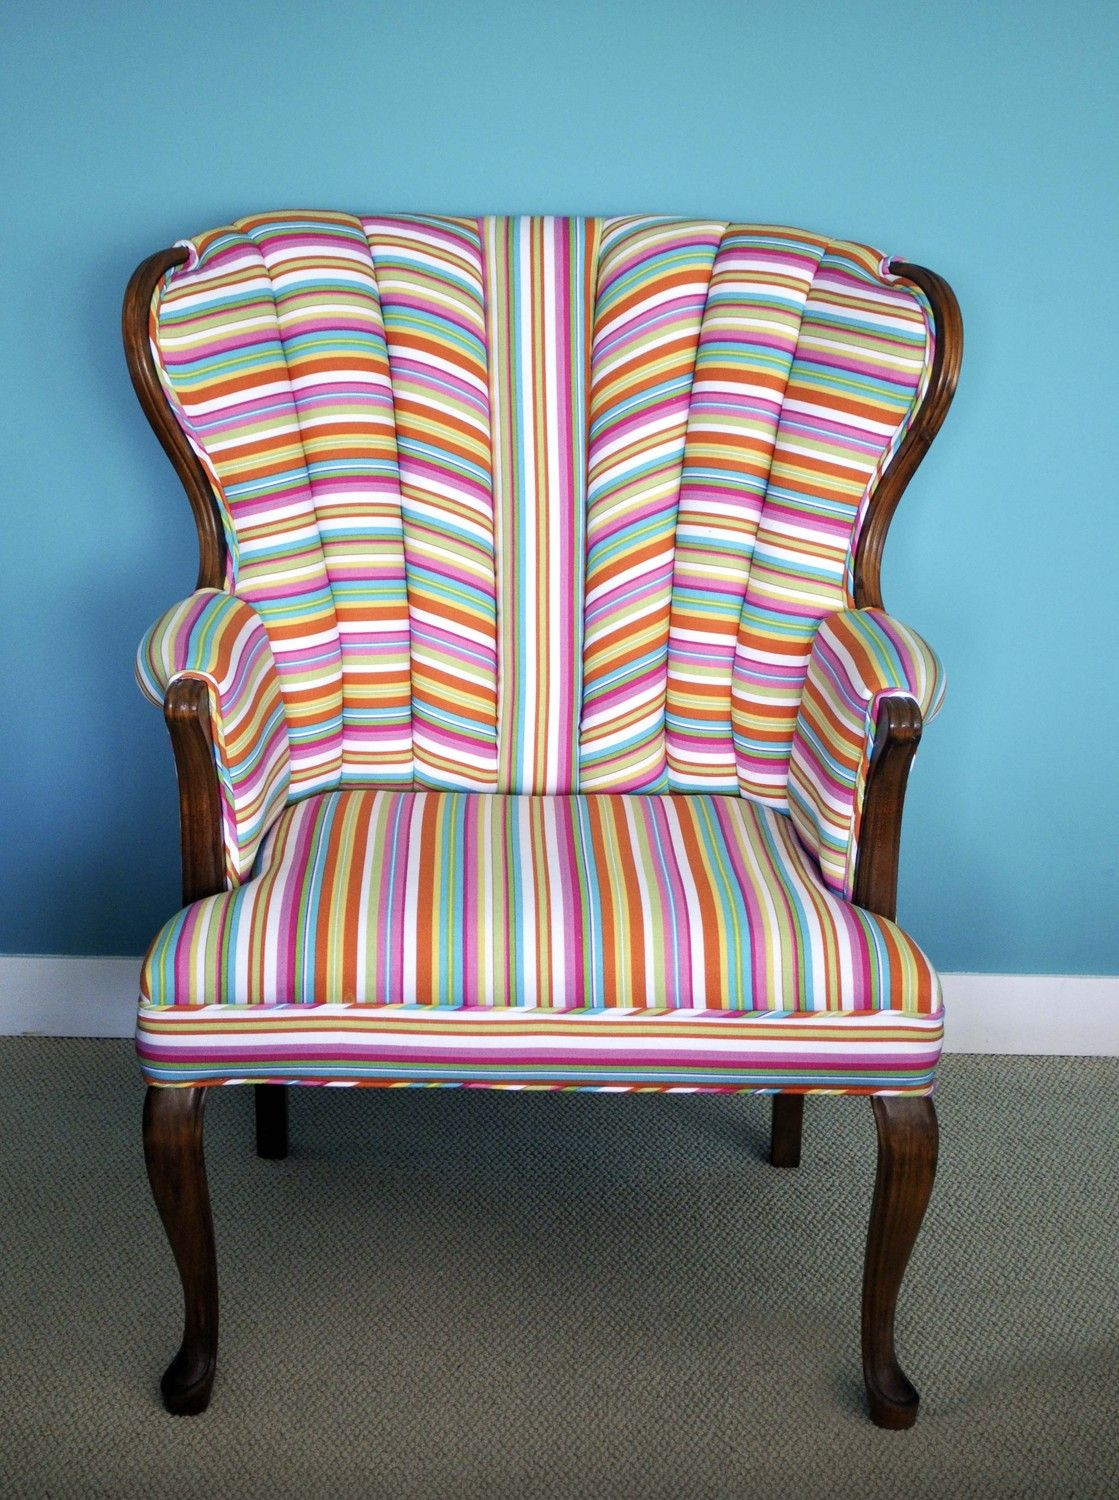 Captivating Vintage/Modern Candy Stripe Upholstered Chair